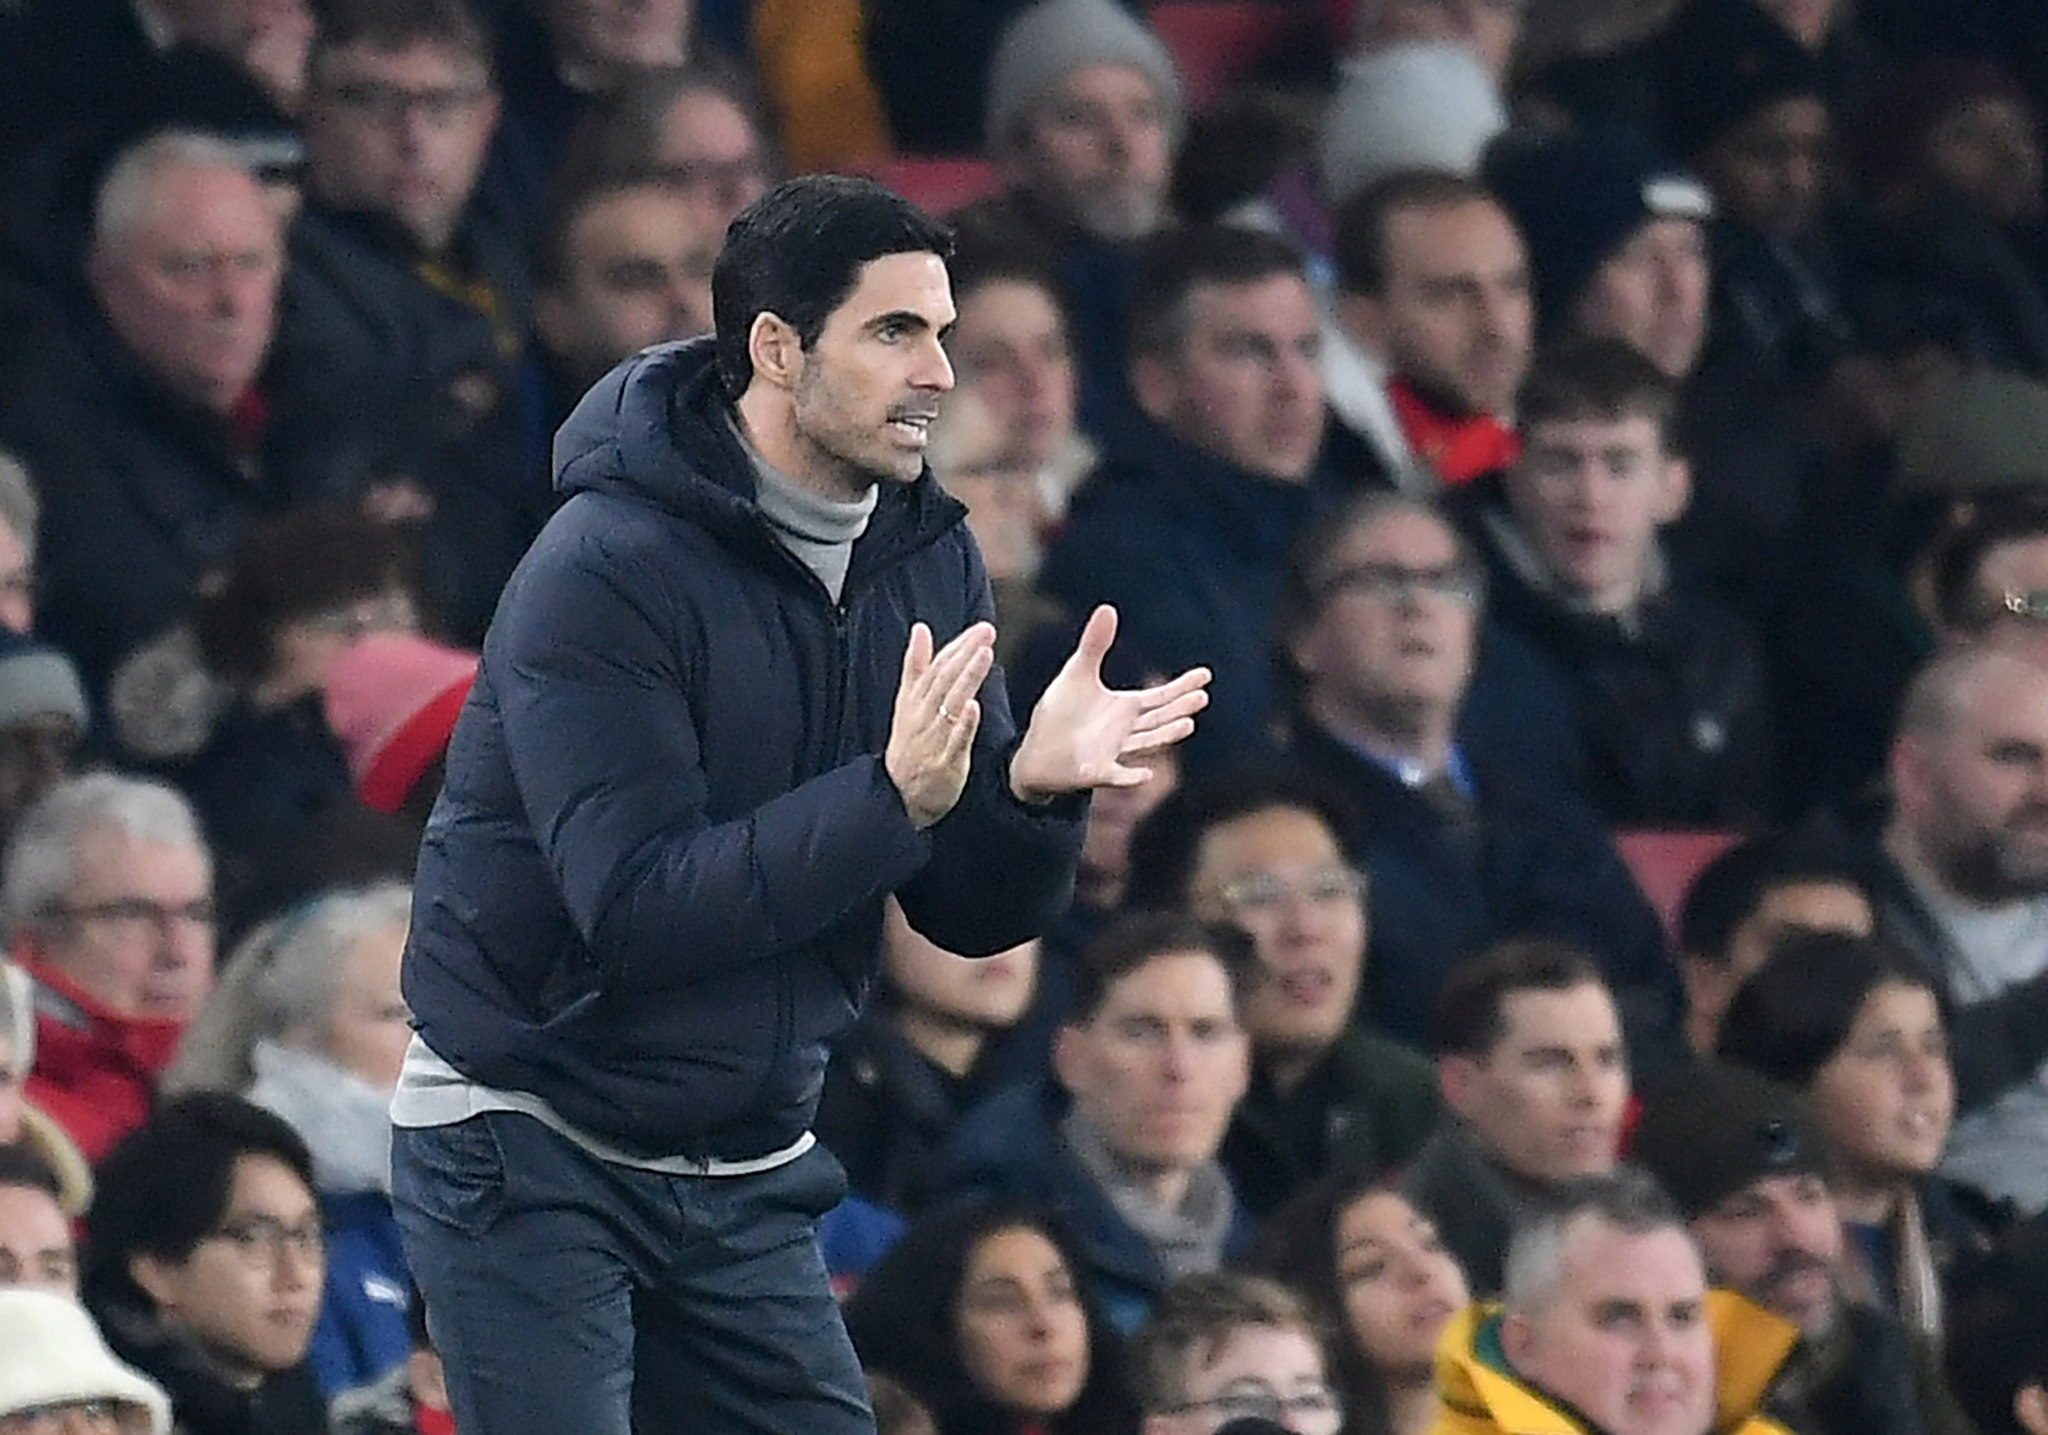 London (United Kingdom), 01/01/2020.- Arsenals manager Mikel <HIT>Arteta</HIT> reacts during the English Premier league soccer match between Arsenal and Manchester United held at the Emirates stadium in London, Britain, 01 January 2020. (Reino Unido, Londres) EFE/EPA/ANDY RAIN EDITORIAL USE ONLY. No use with unauthorized audio, video, data, fixture lists, club/league logos or live services. Online in-match use limited to 120 images, no video emulation. No use in betting, games or single club/league/player publications